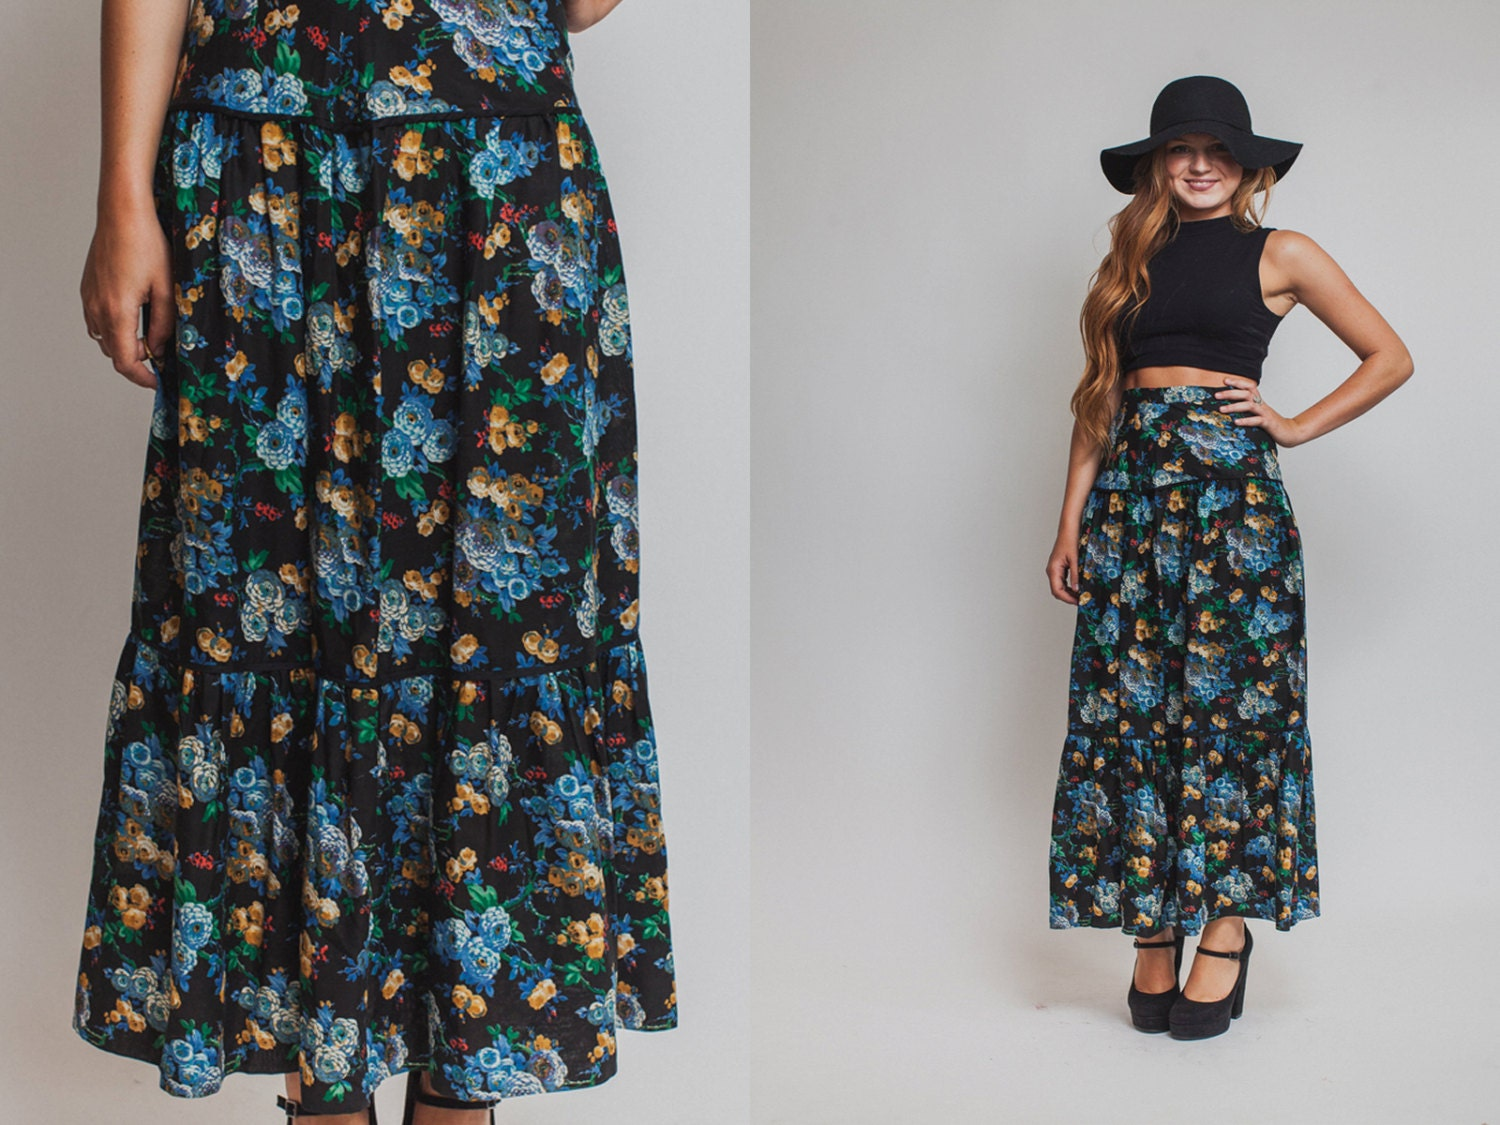 floral skirt vintage 70s 80s maxi high waisted boho by